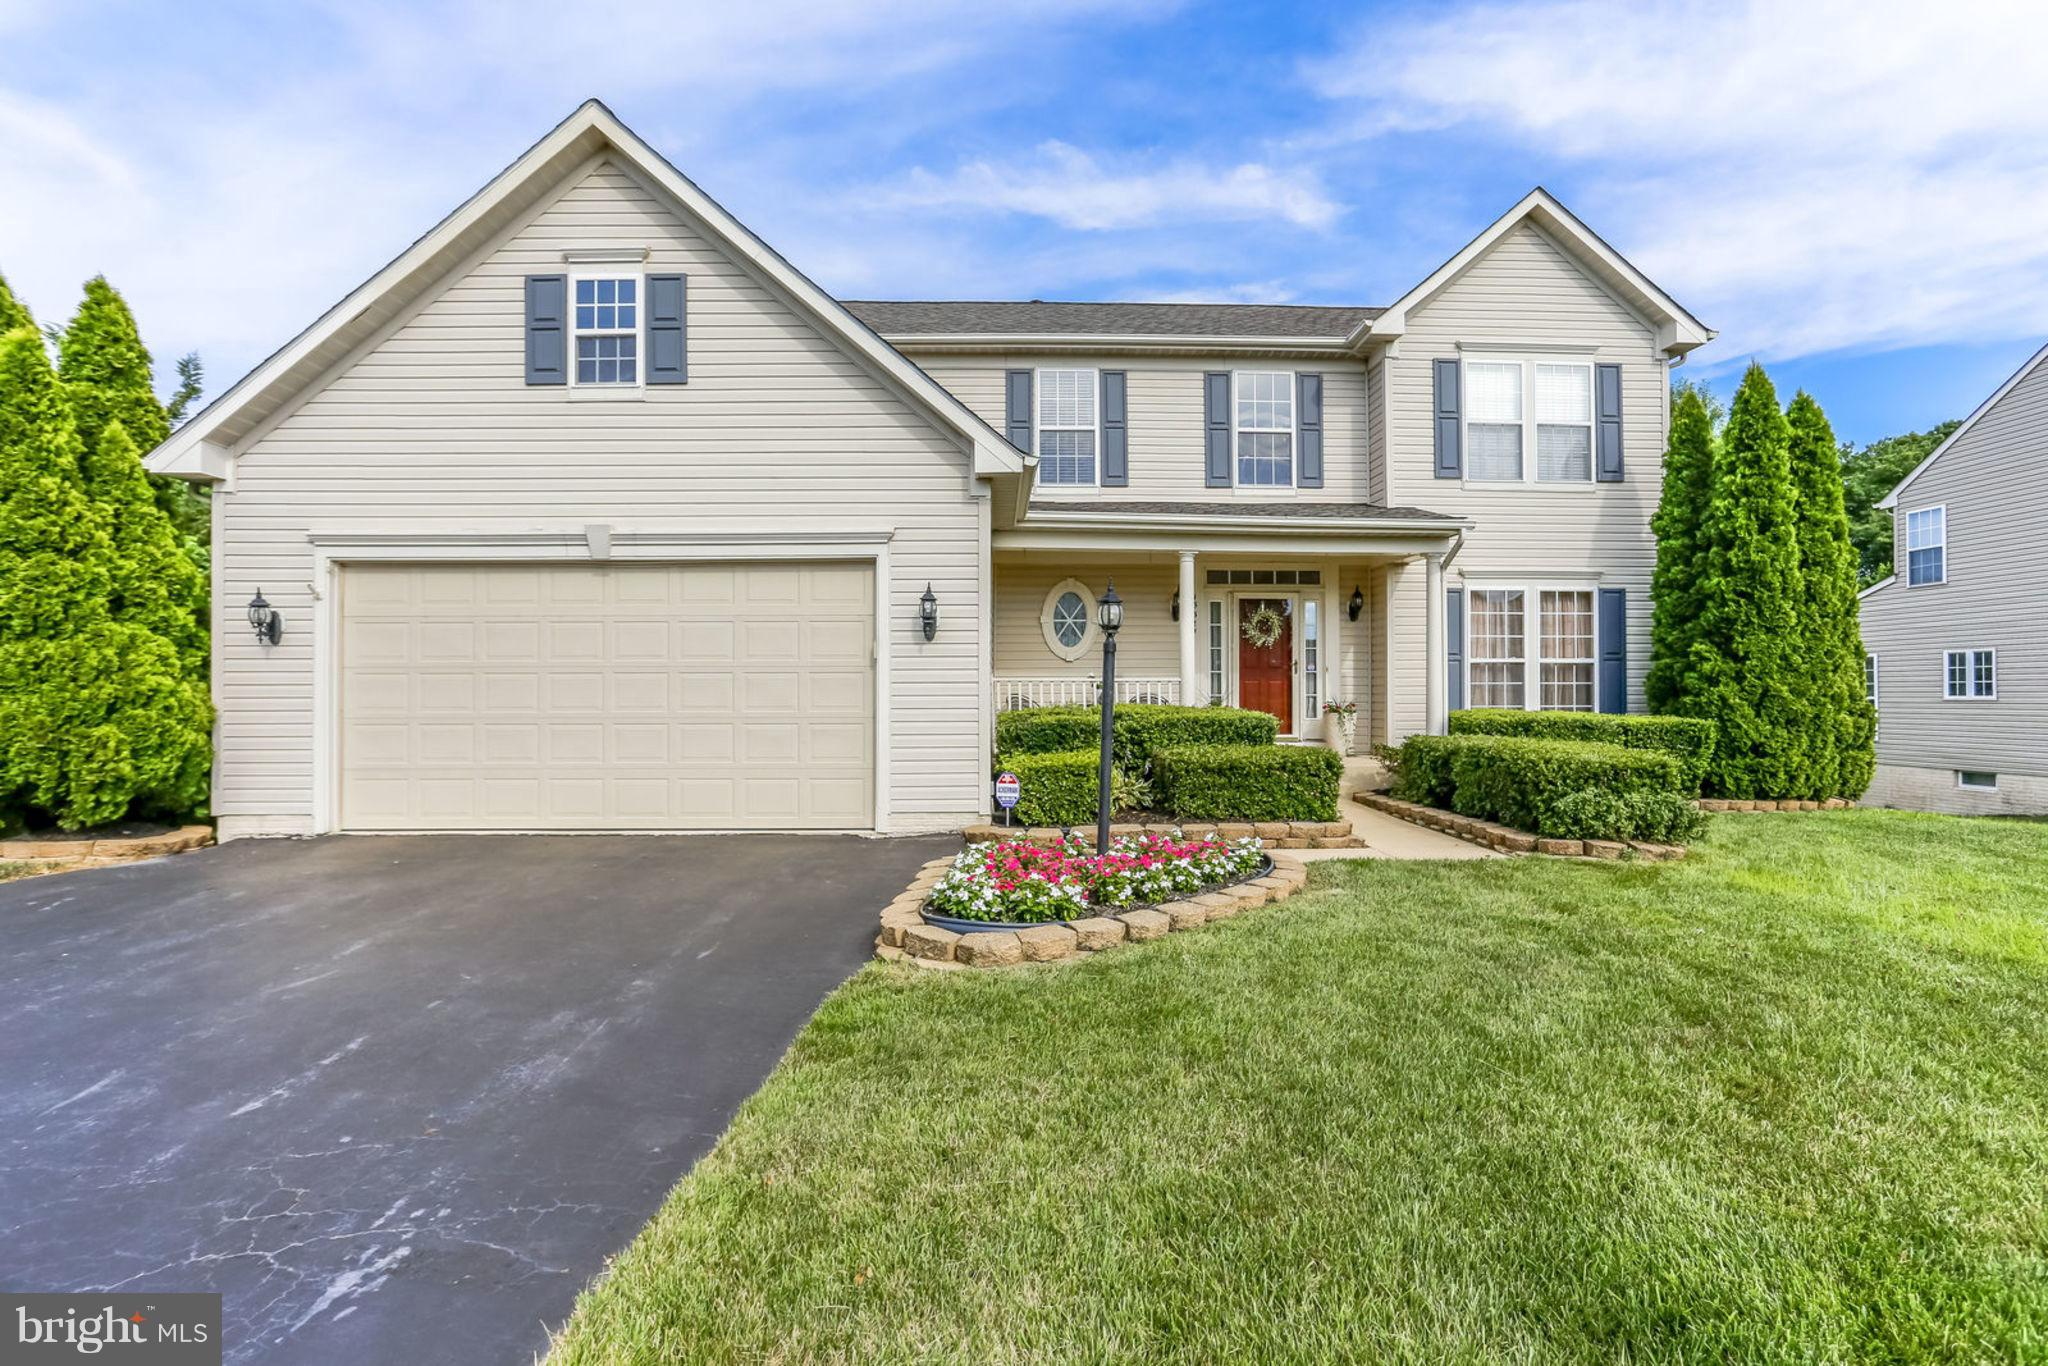 VERY MOTIVATED SELLER * 2% CLOSING COST W/FULL PRICE OFFER  * HALF ACRE CORNER FENCED LOT * 4 BEDS UPPER LVL * UPGRADED APPLIANCES * LARGE KITCHEN W/ISLAND & GRANITE * BREAKFAST RM * OFFICE/LIBRARY * FAM RM W/FIREPLACE * WALK OUT FIN BASEMENT, FULL BATH, REC ROOM & HUGE STORAGE & GUEST RM * NEW AC 2017 * NEW ROOF 2018 * UPDATED BATHROOMS * 2 STORY FOYER * DECK W/RETRACTABLE AWNING * SPRINKLER SYS